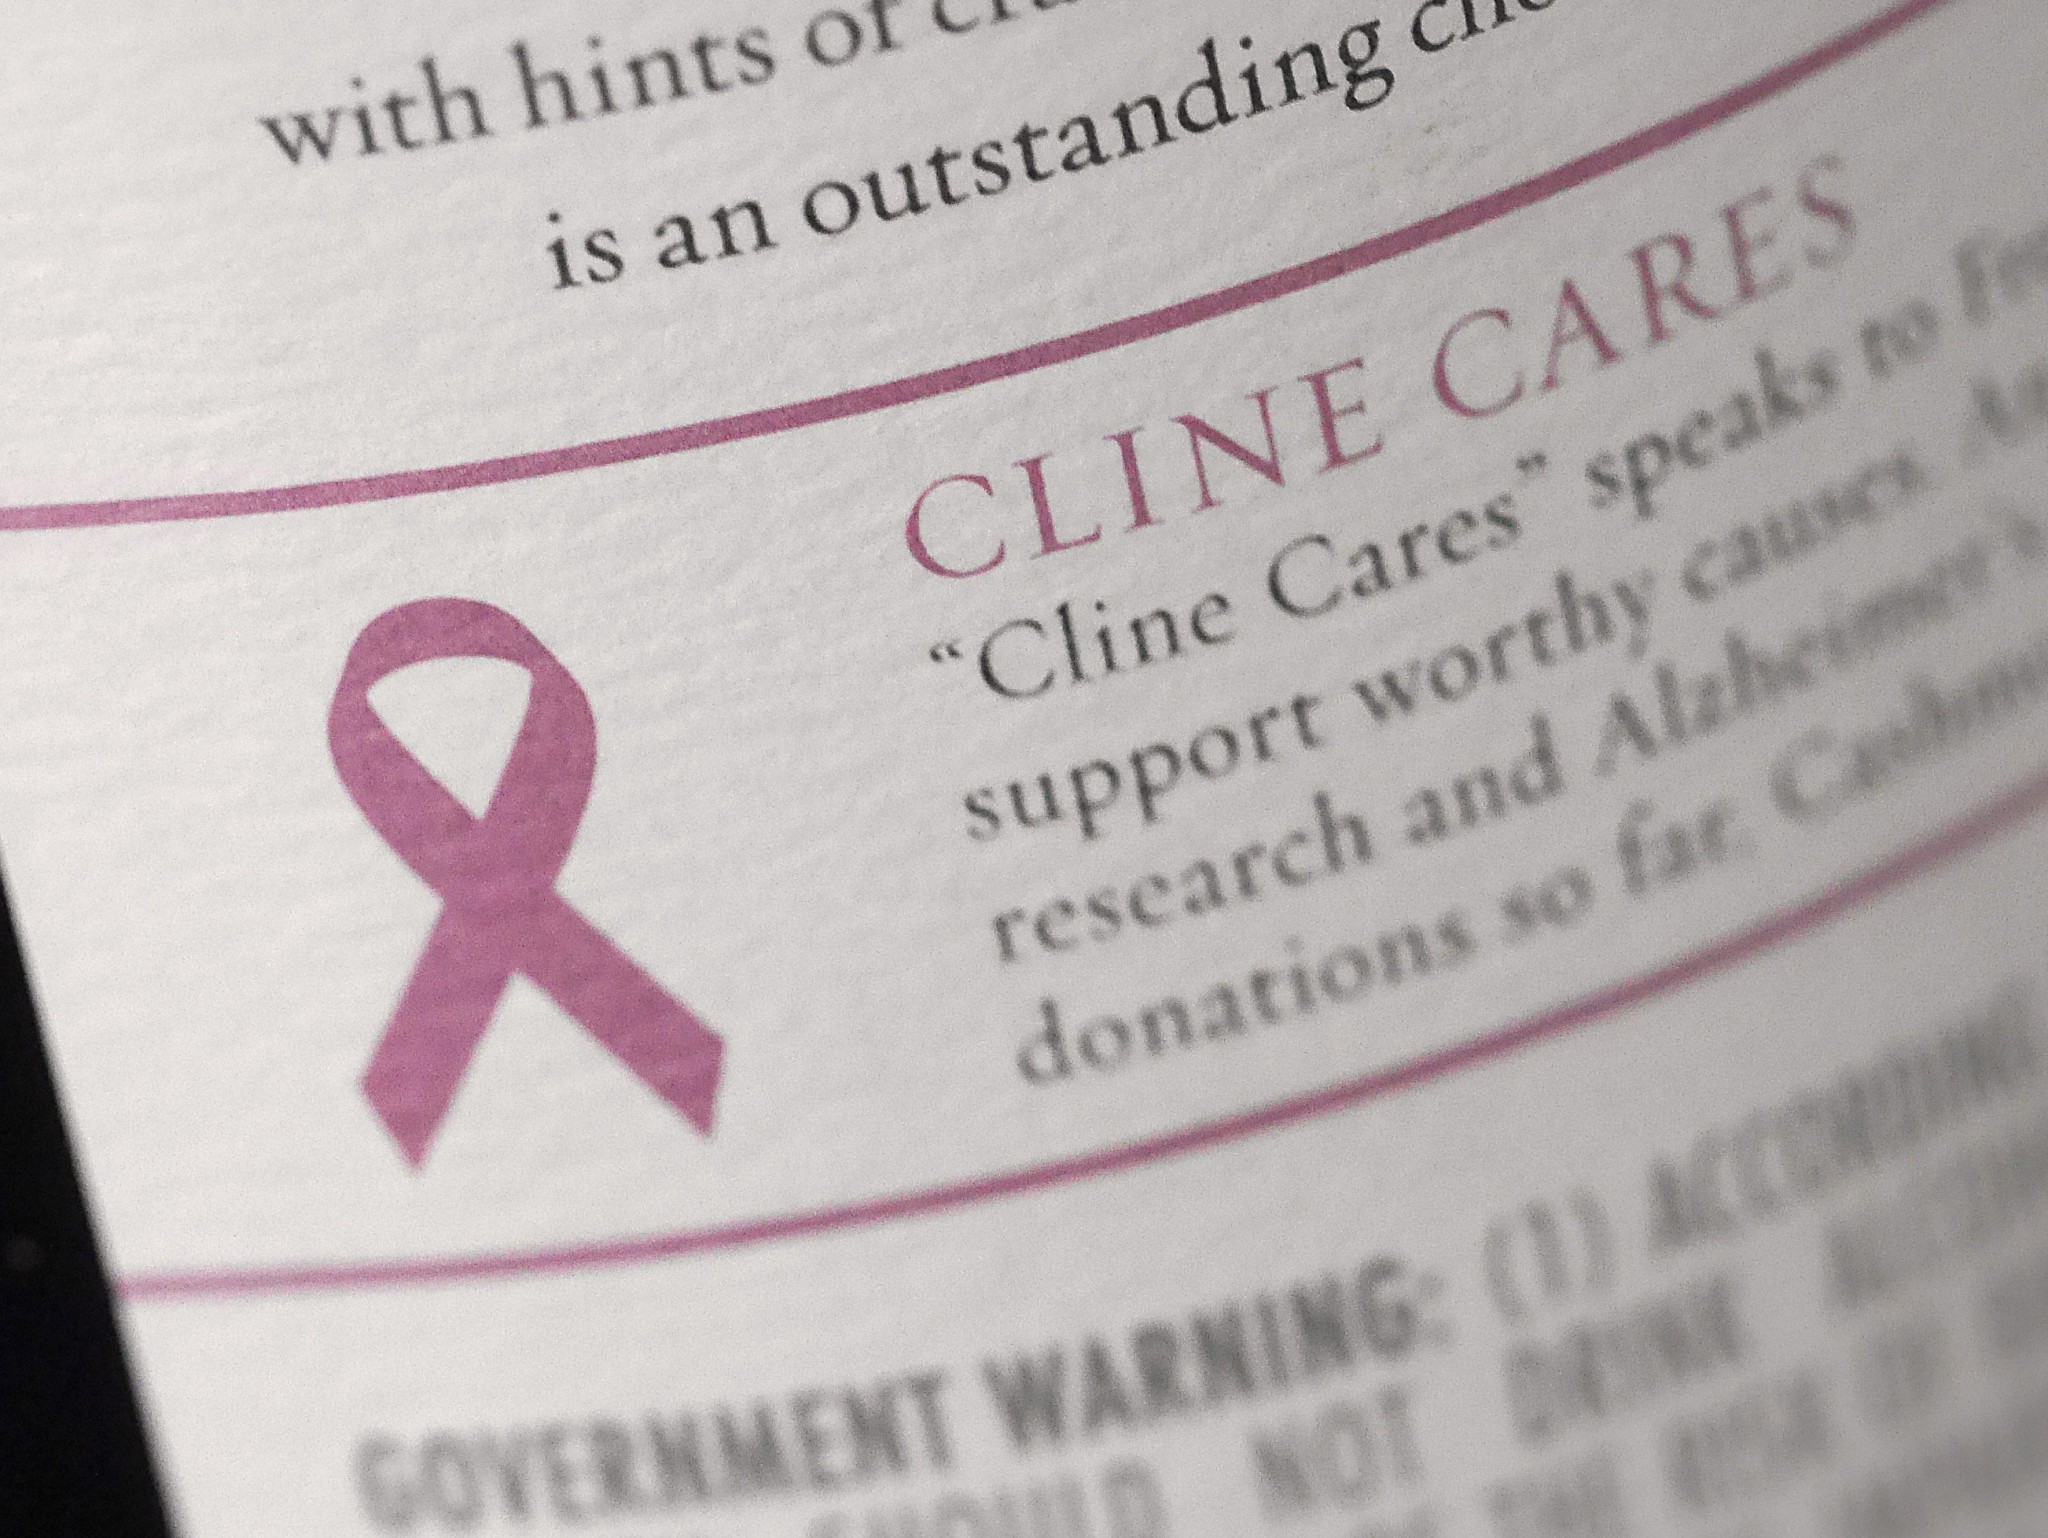 Cline Cares Cashmere Back Label